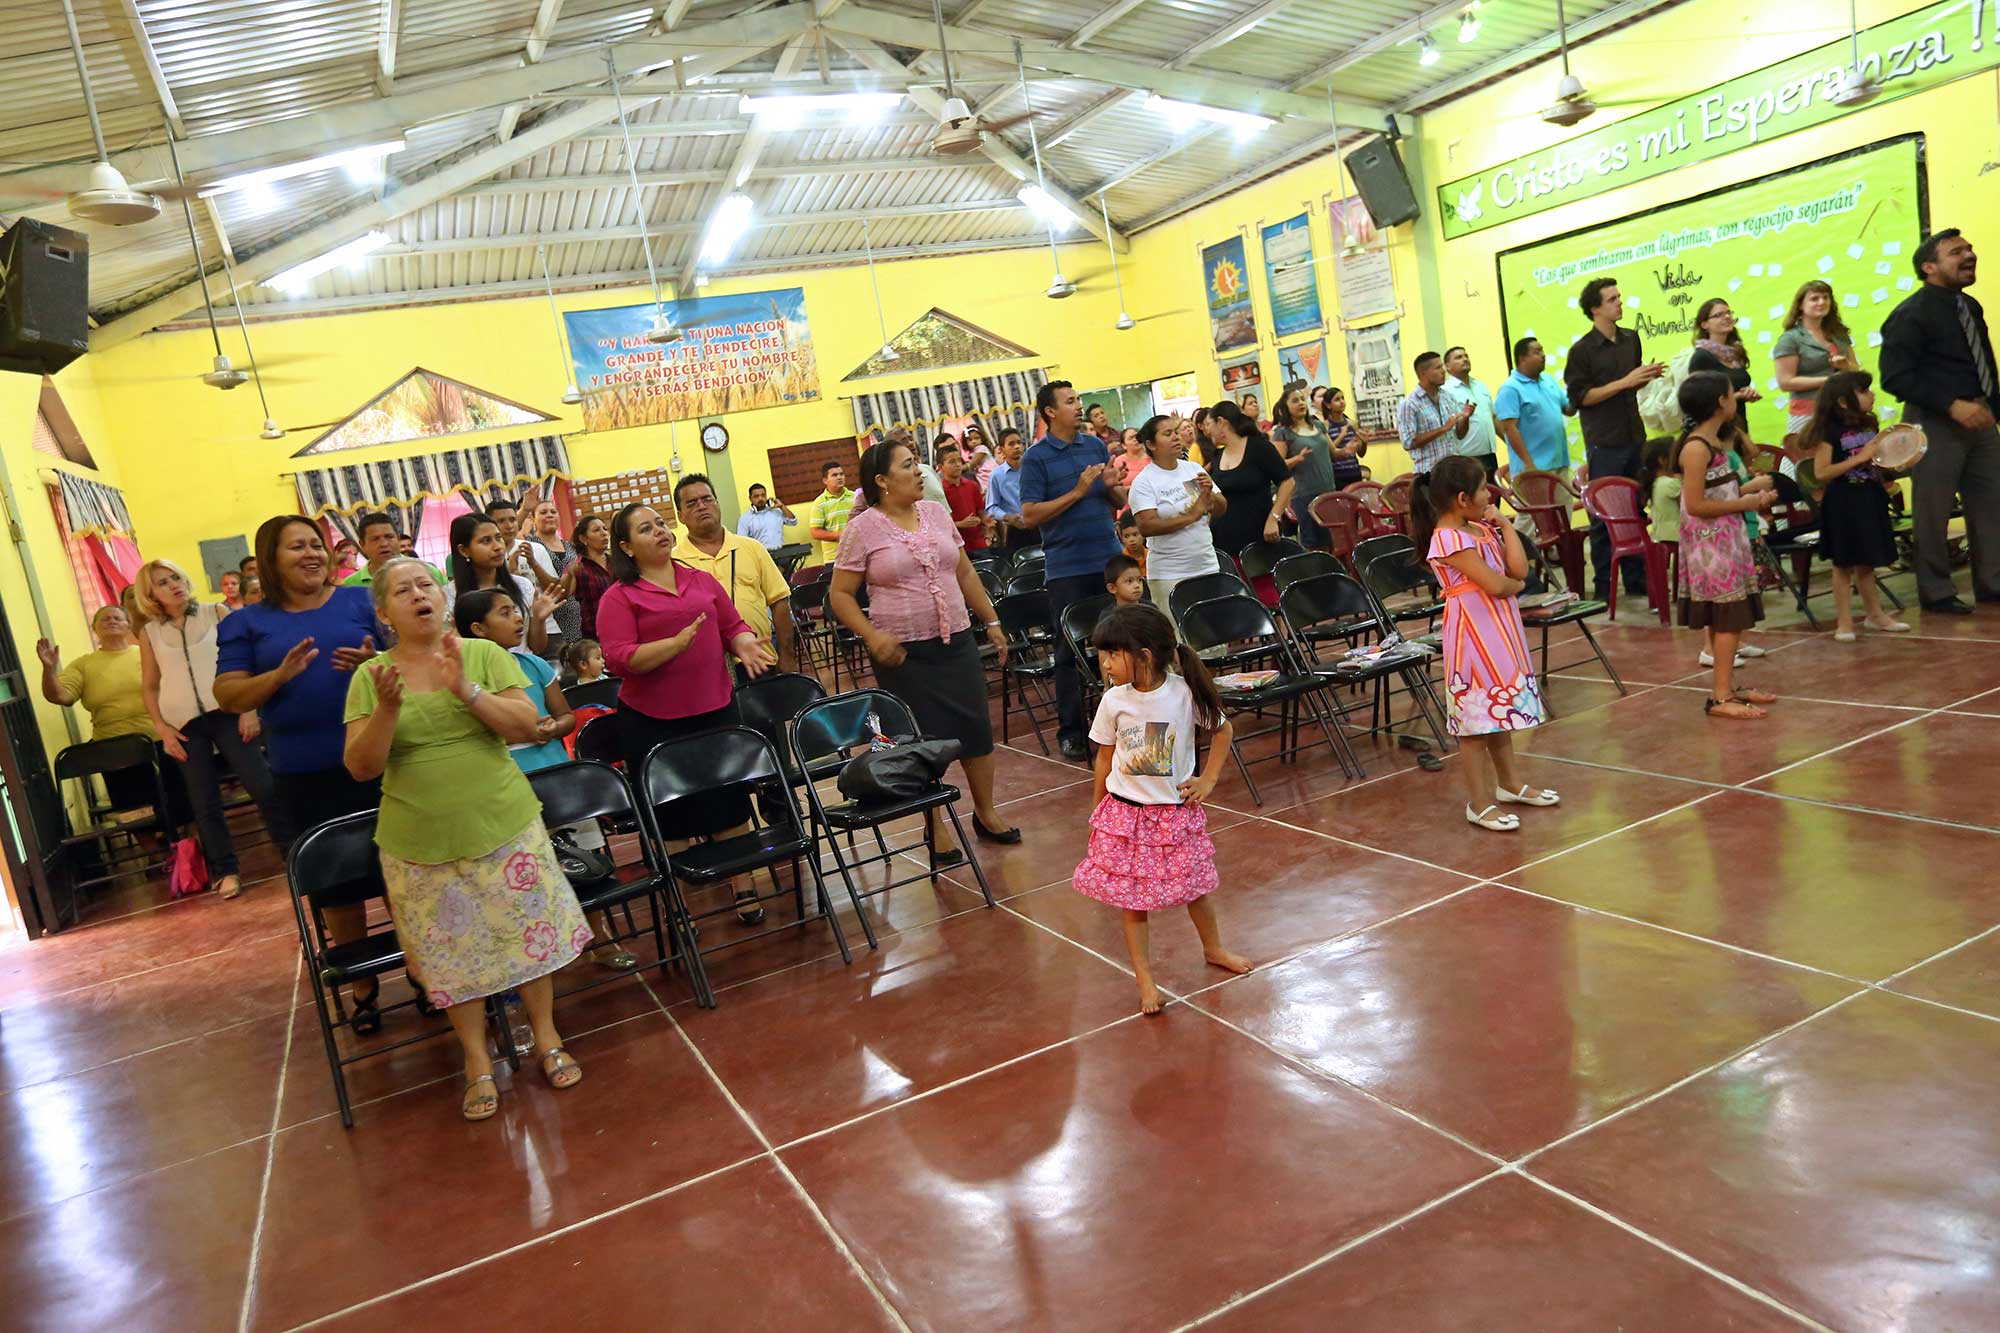 A congregation participate in worship with children at the front